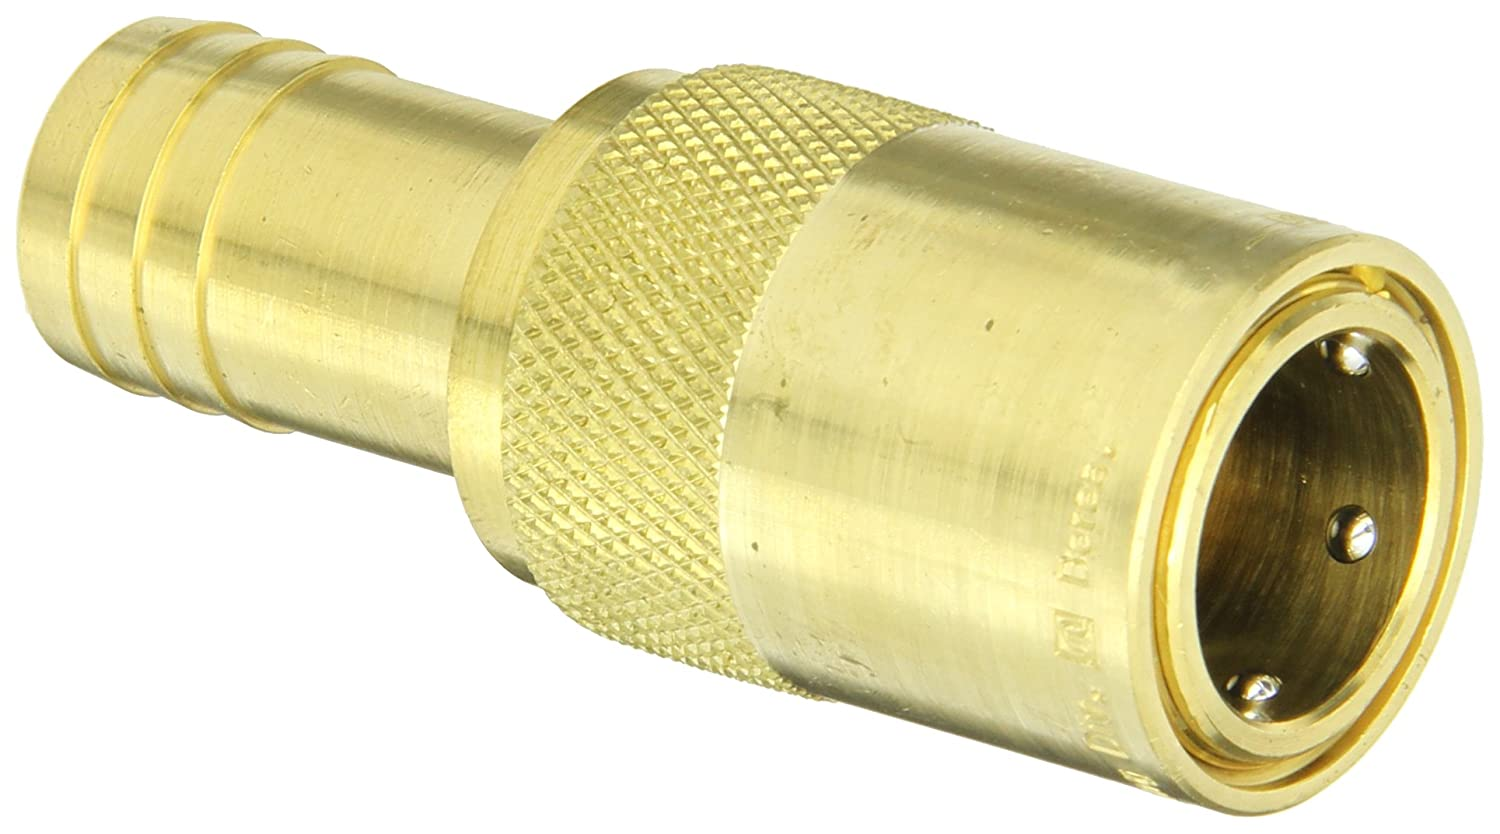 Eaton Hansen FTS506 Brass Straight Hose Stem Hydraulic Fitting, Socket, 3/4